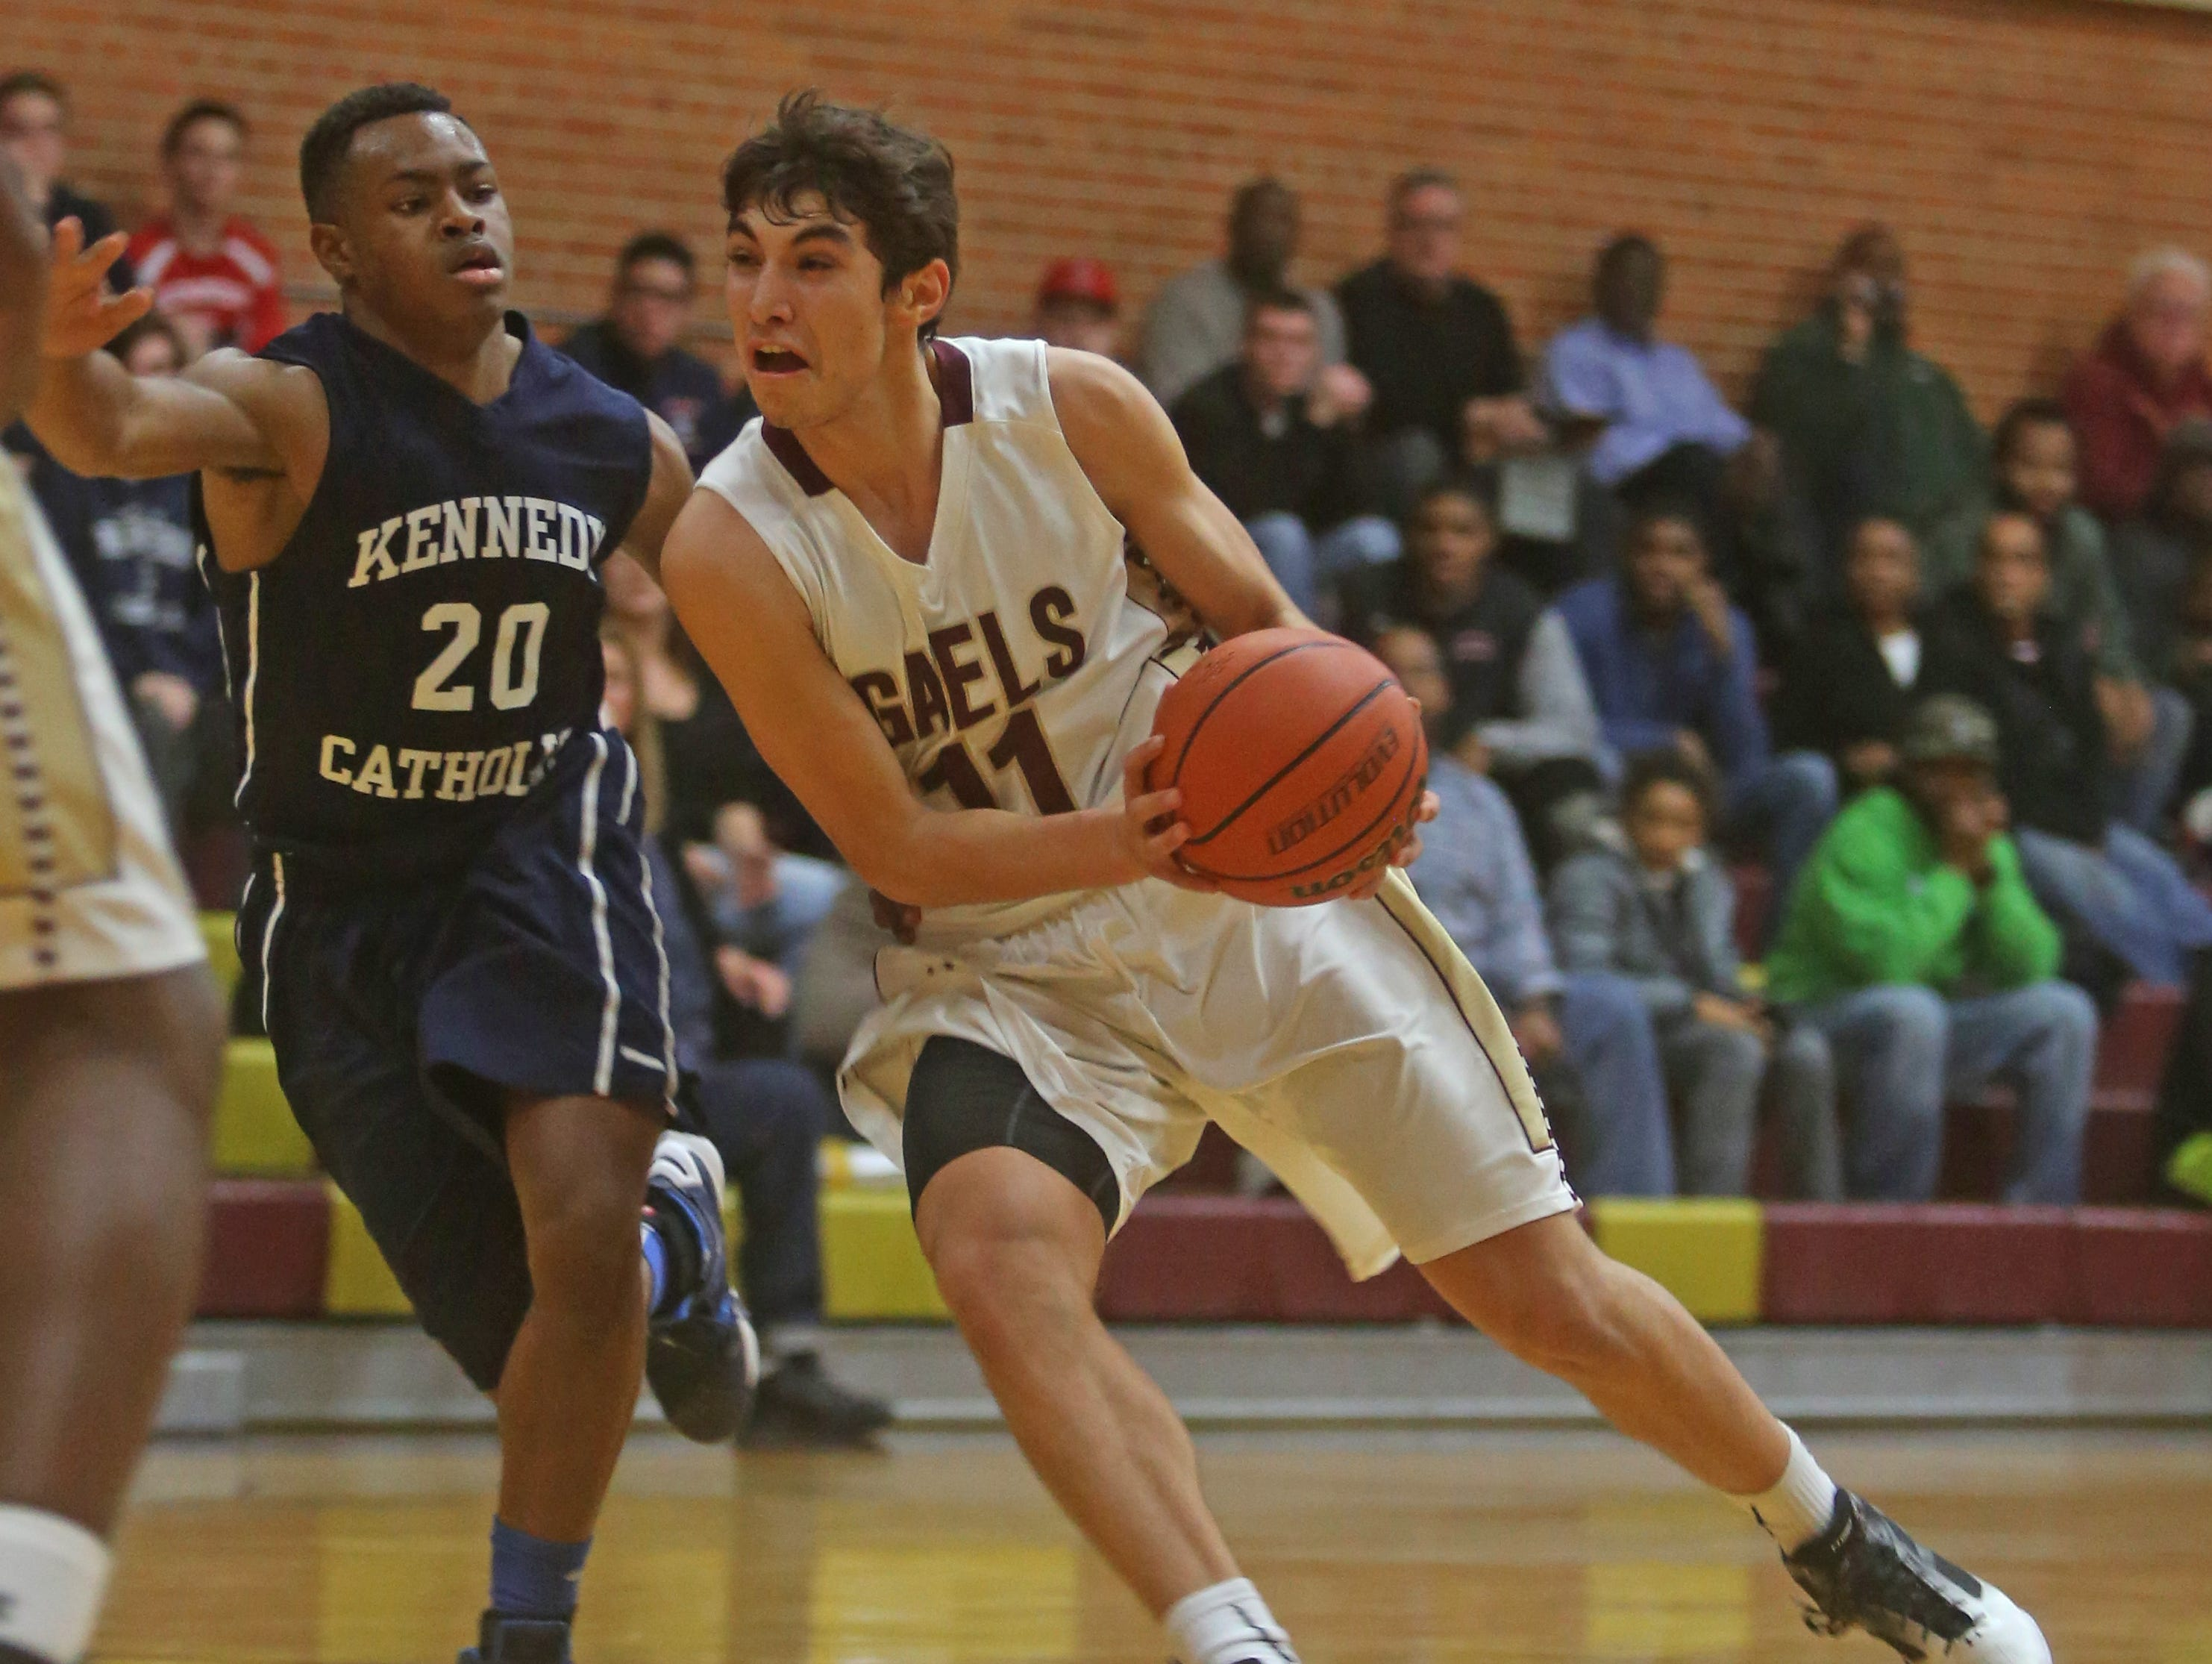 Iona Prep's Ty Jerome drives past Kennedy Catholic's Alex Benson during a varsity basketball game against Kennedy Catholic at Iona Prep in New Rochelle Dec. 9, 2015. Iona Prep defeated Kennedy 75-49. Jerome finished with a game high 28 points.